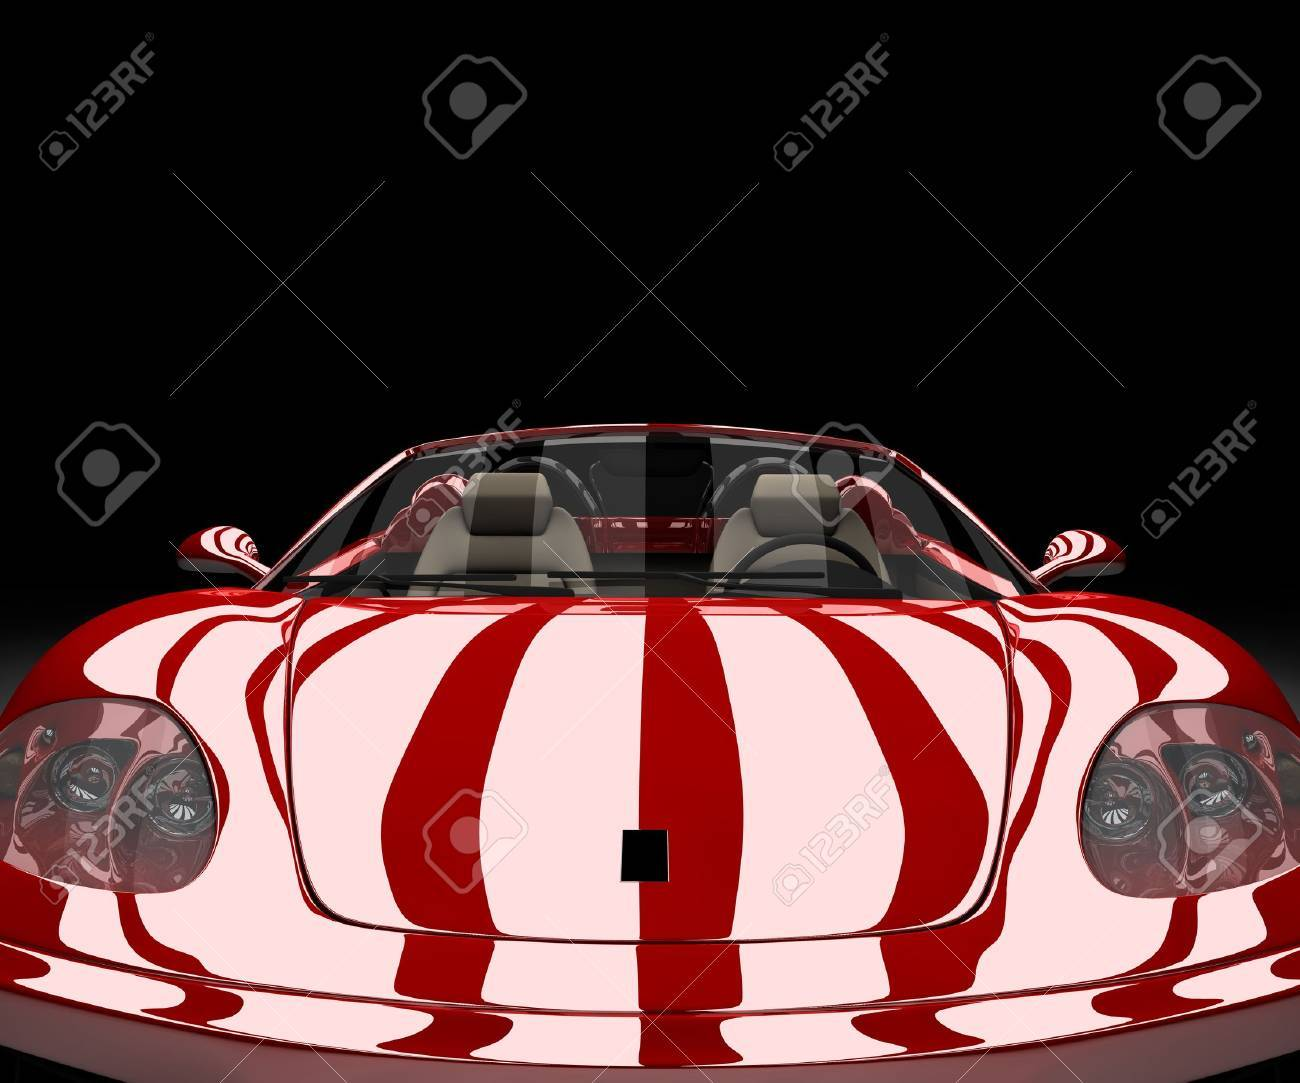 A front red car Stock Photo - 5340954